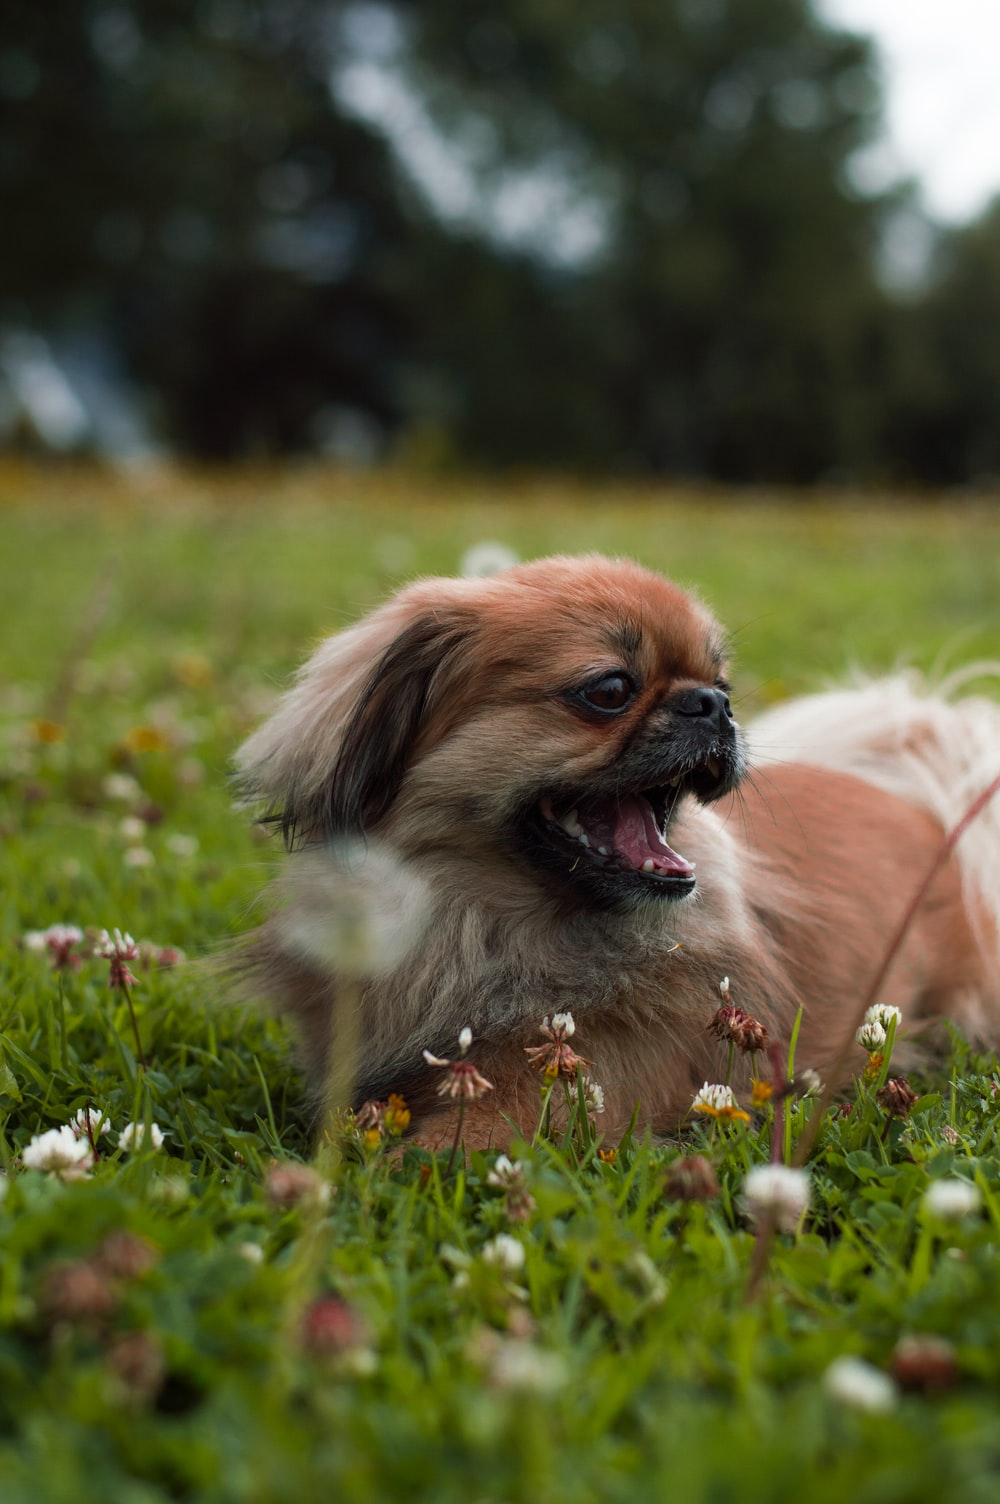 brown and white short coated puppy lying on grass lawn